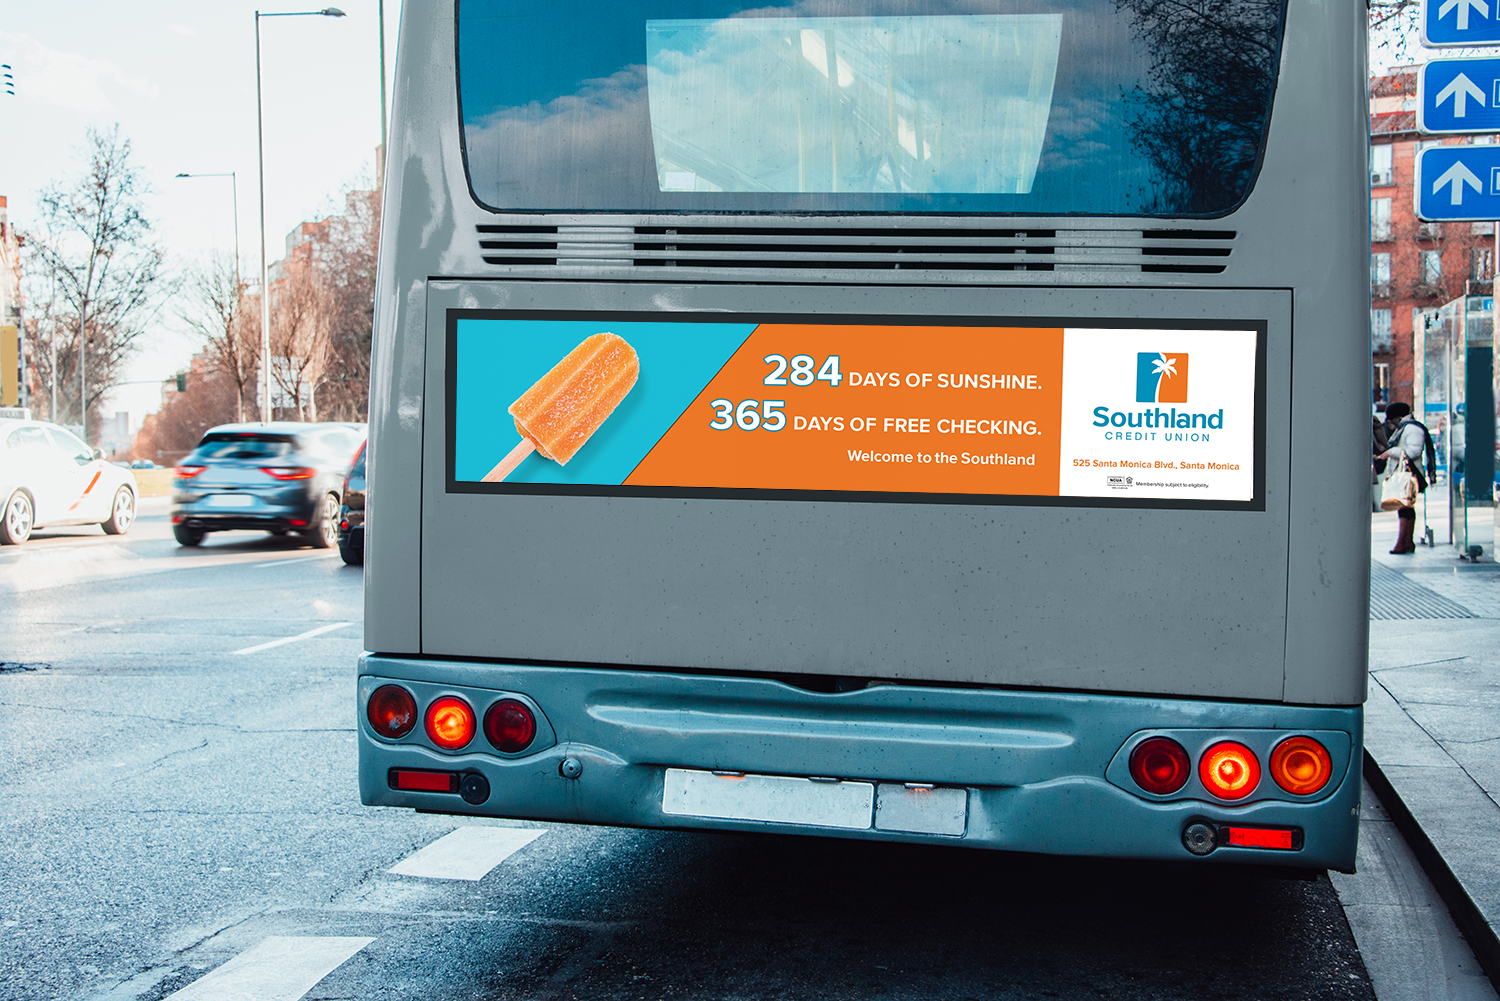 Southland_BusAd_02.png